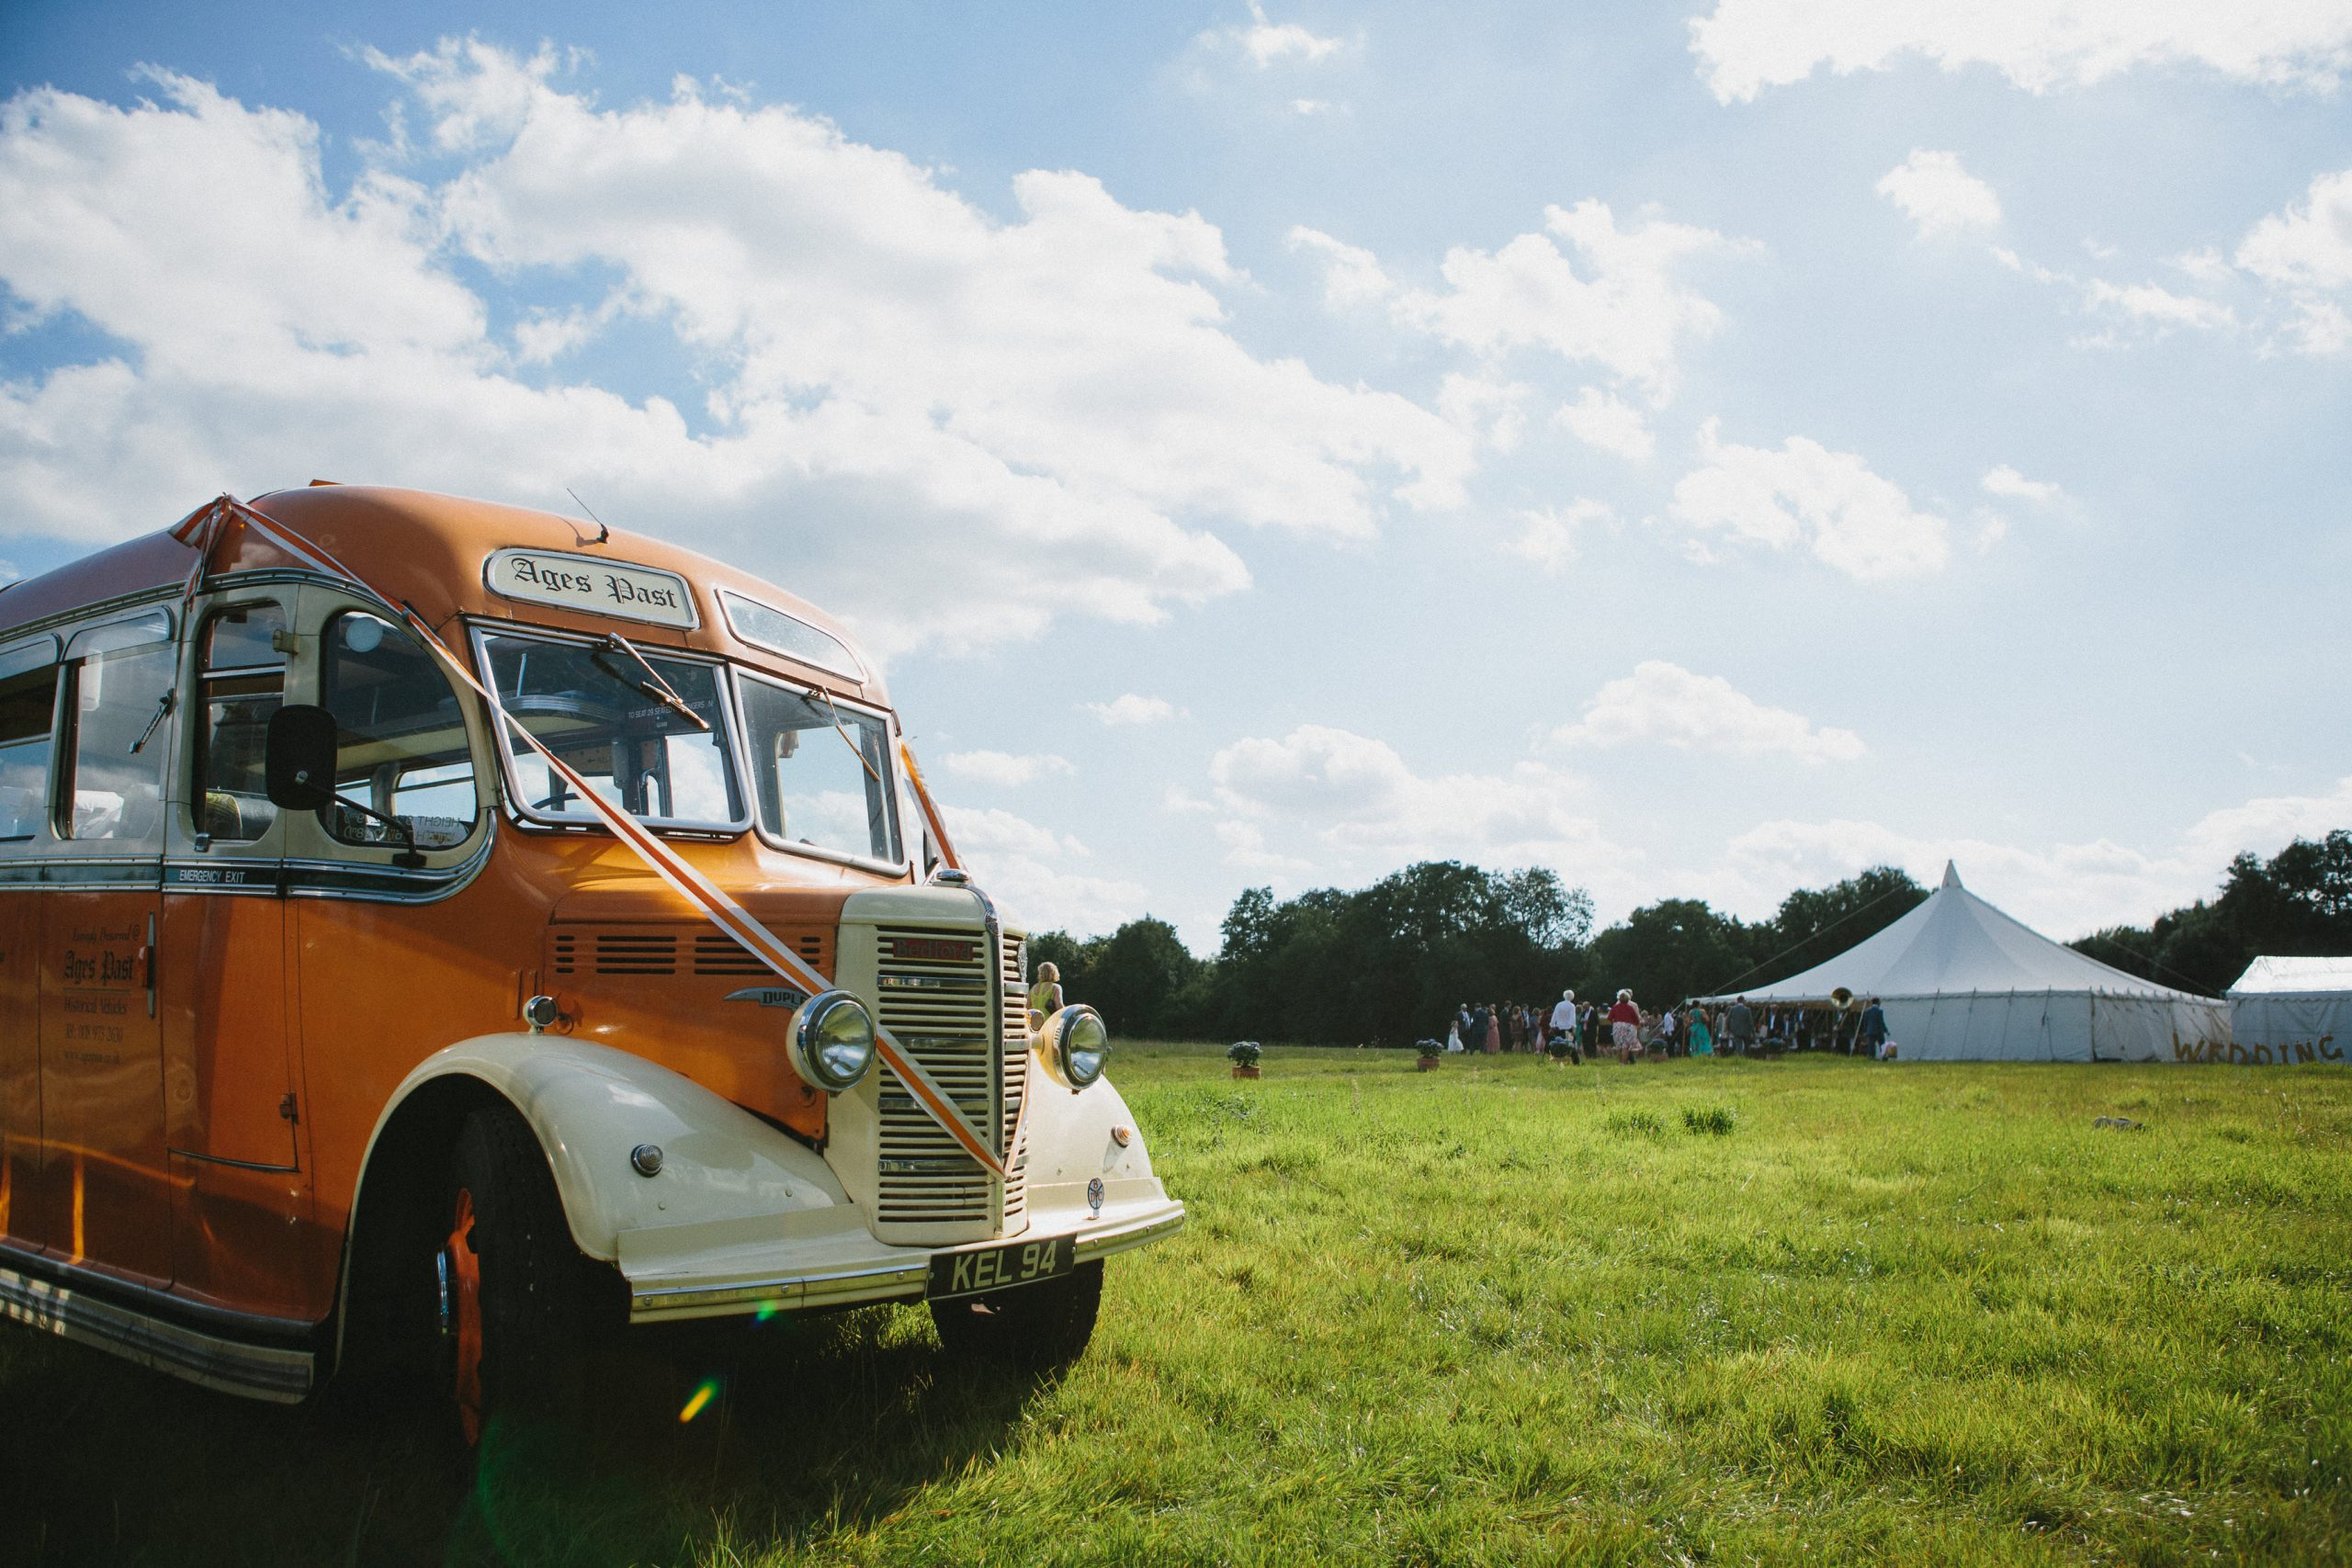 vintage bus in front of a traditional pole tent in a field